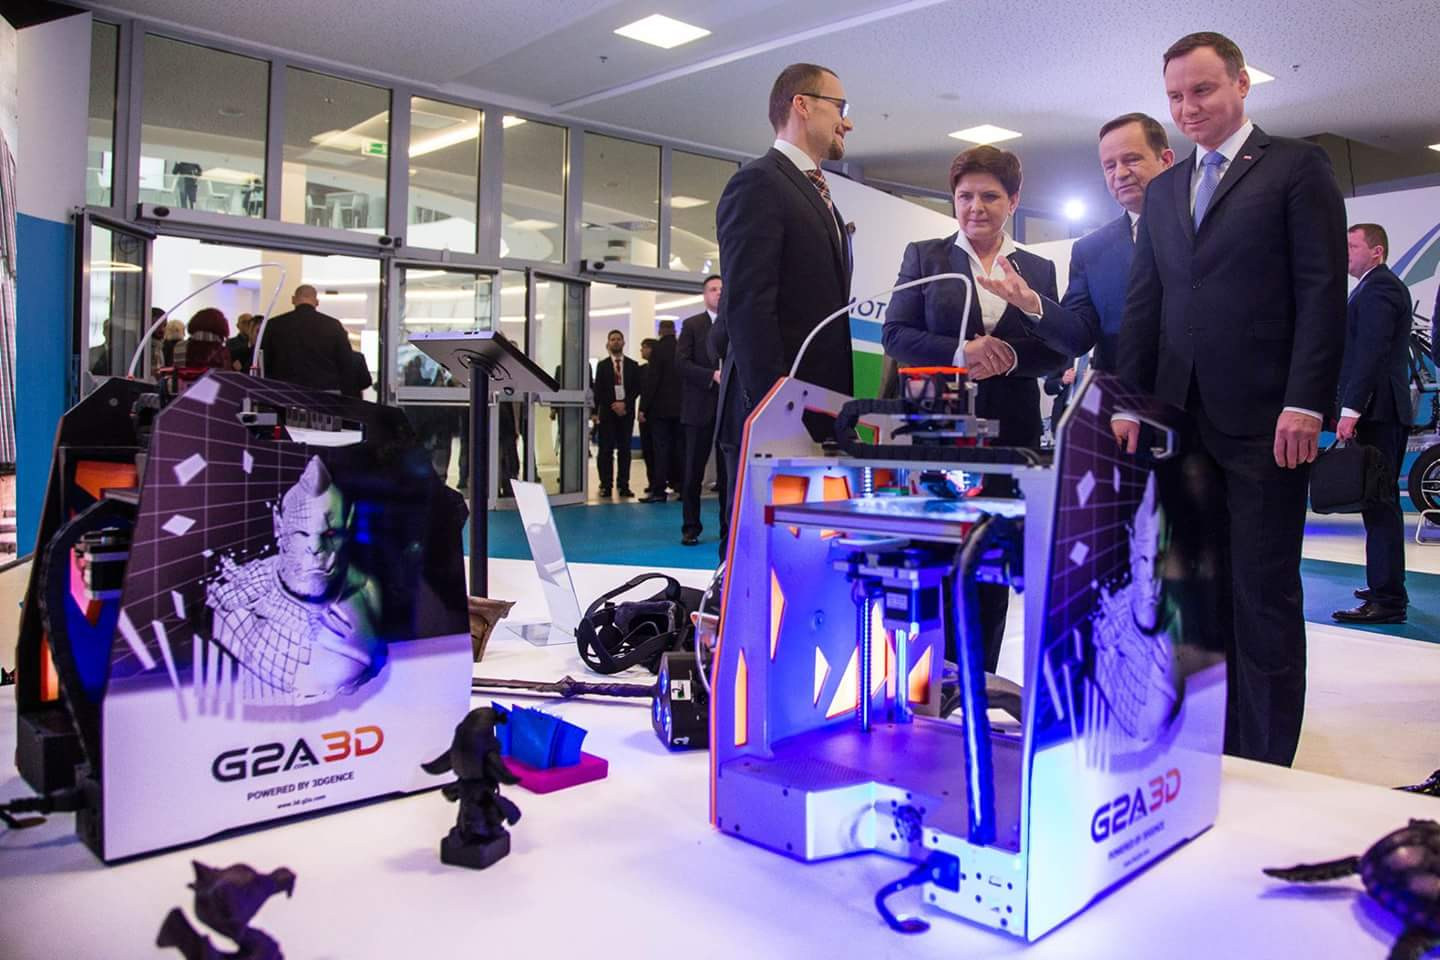 Presenting G2A 3D to Andrzej Duda, President of Poland, Beata Szydło, Prime Minister of Poland and Władysław Ortyl, Marshall of the Subcarpathian Voivodeship